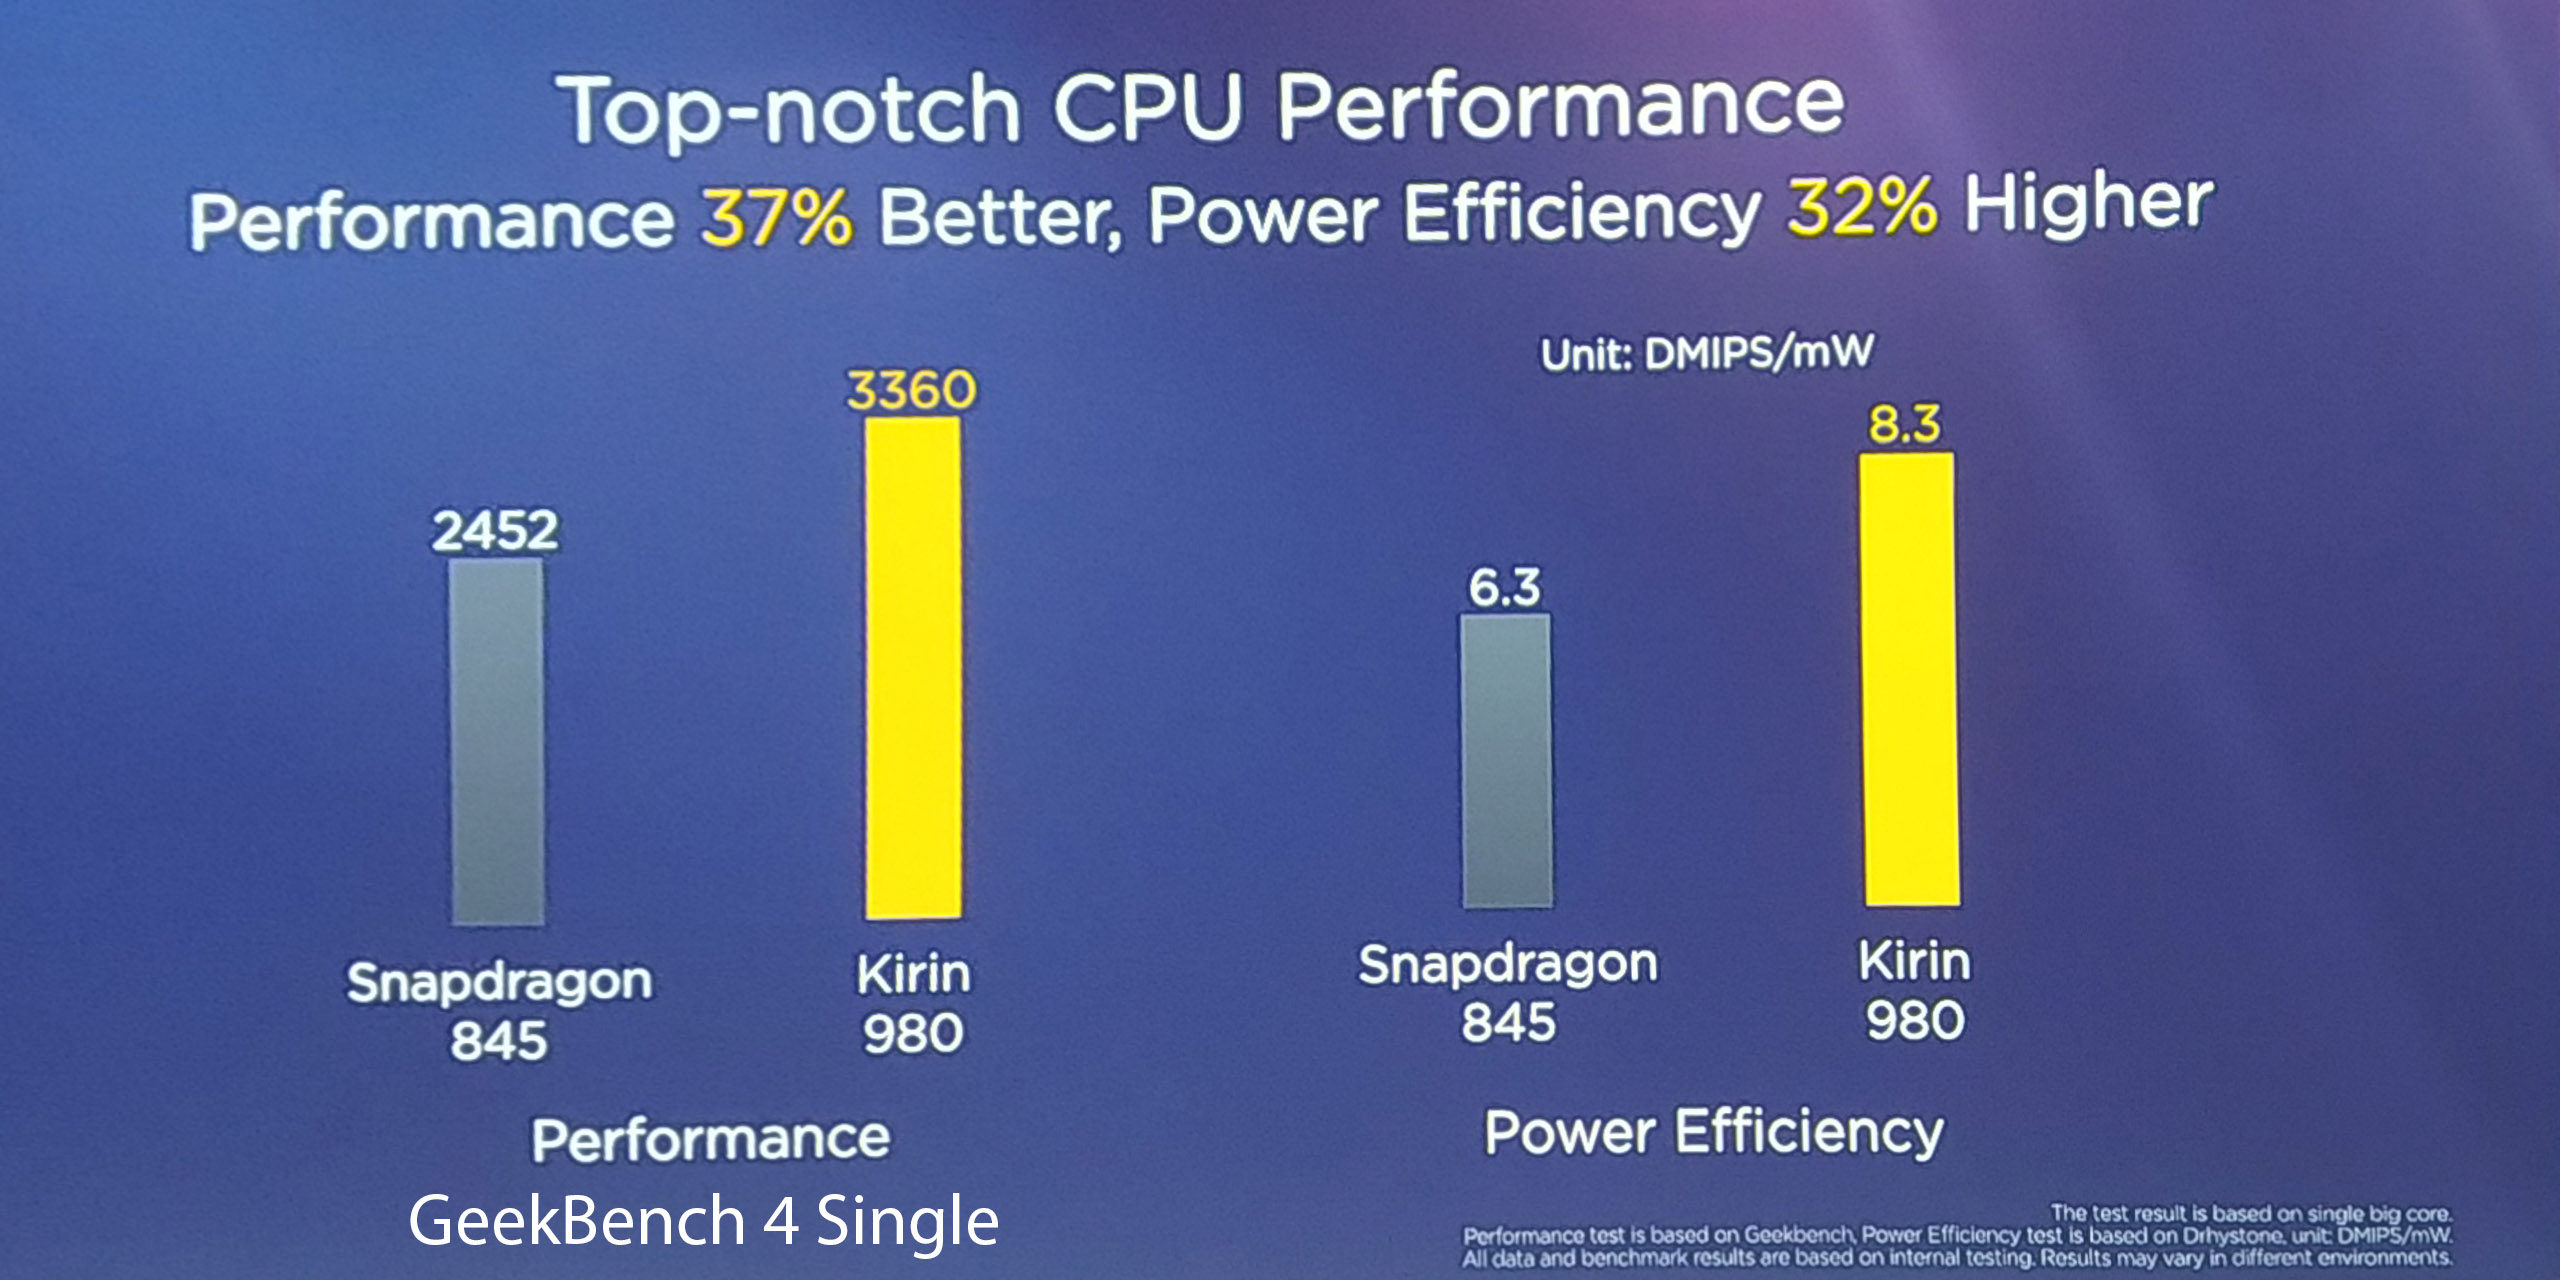 HiSilicon Announces The Kirin 980: First A76, G76 on 7nm